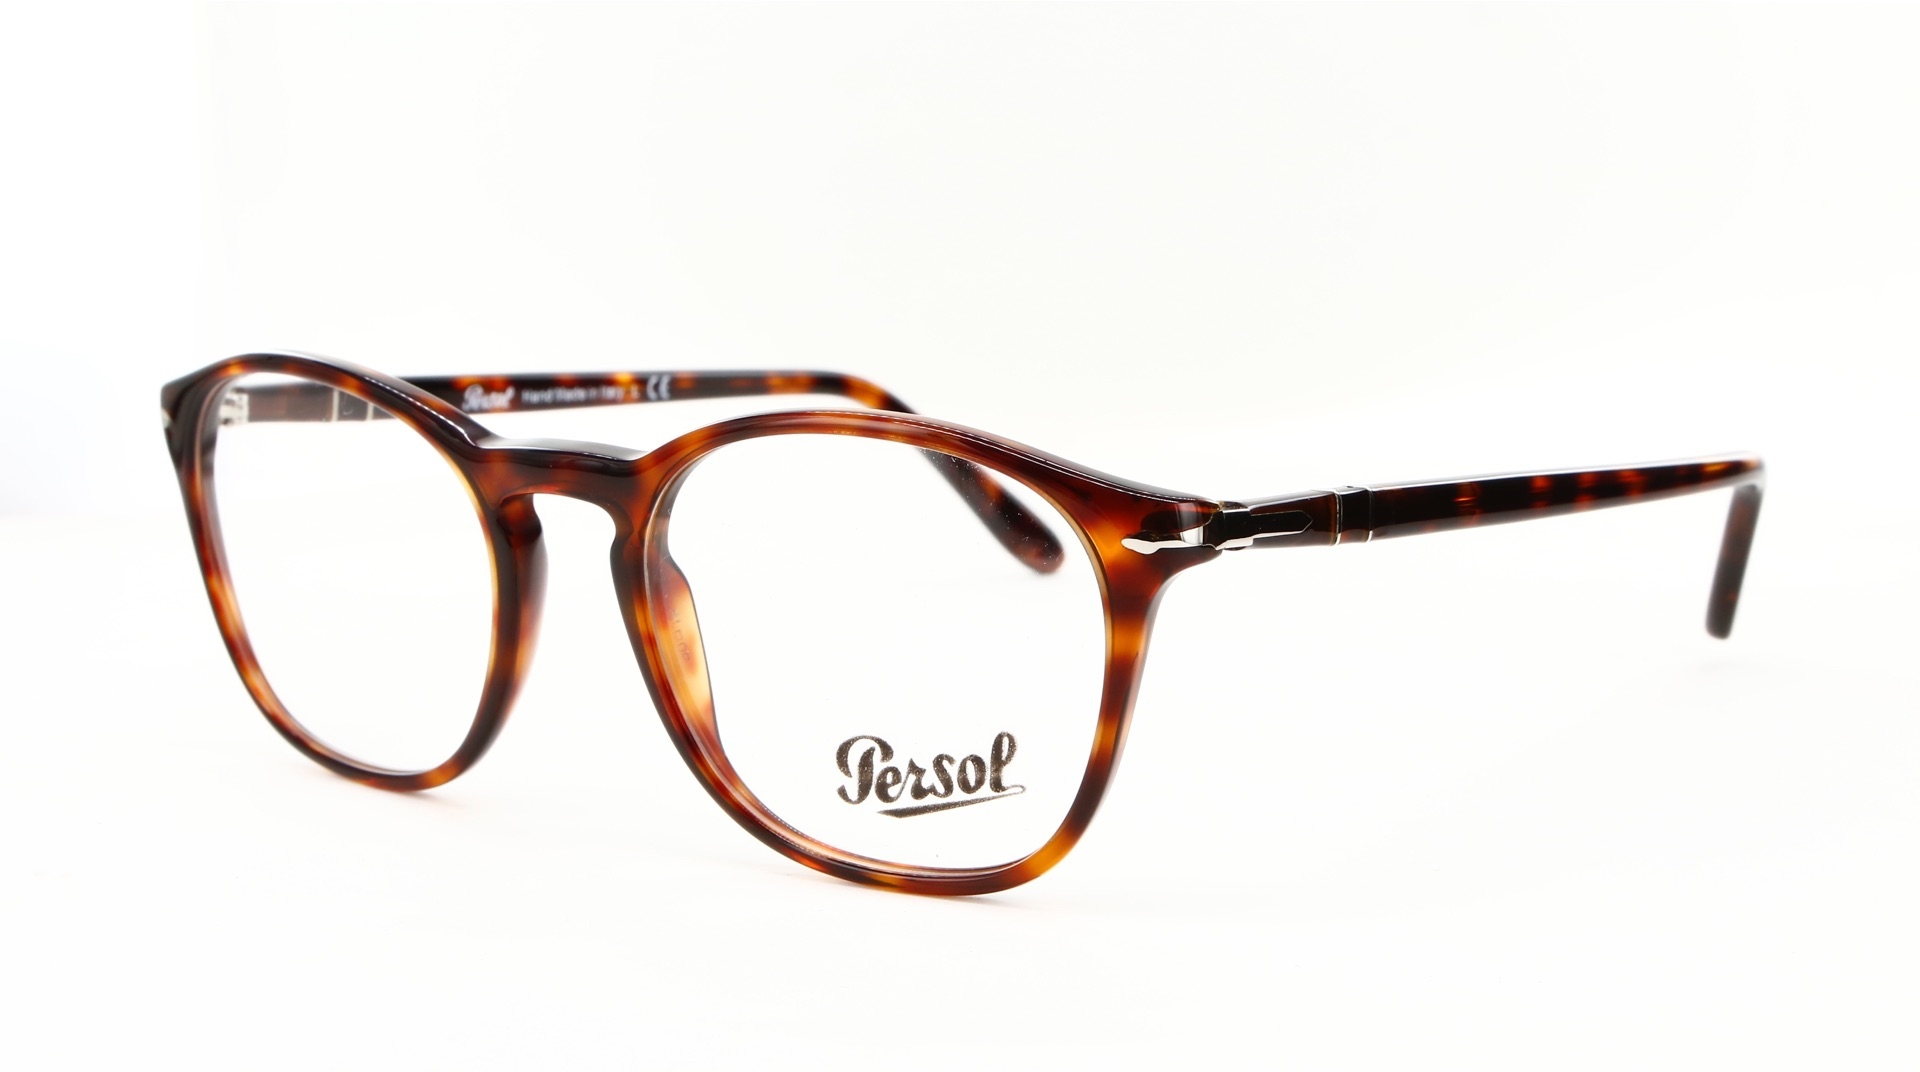 Persol - ref: 63876